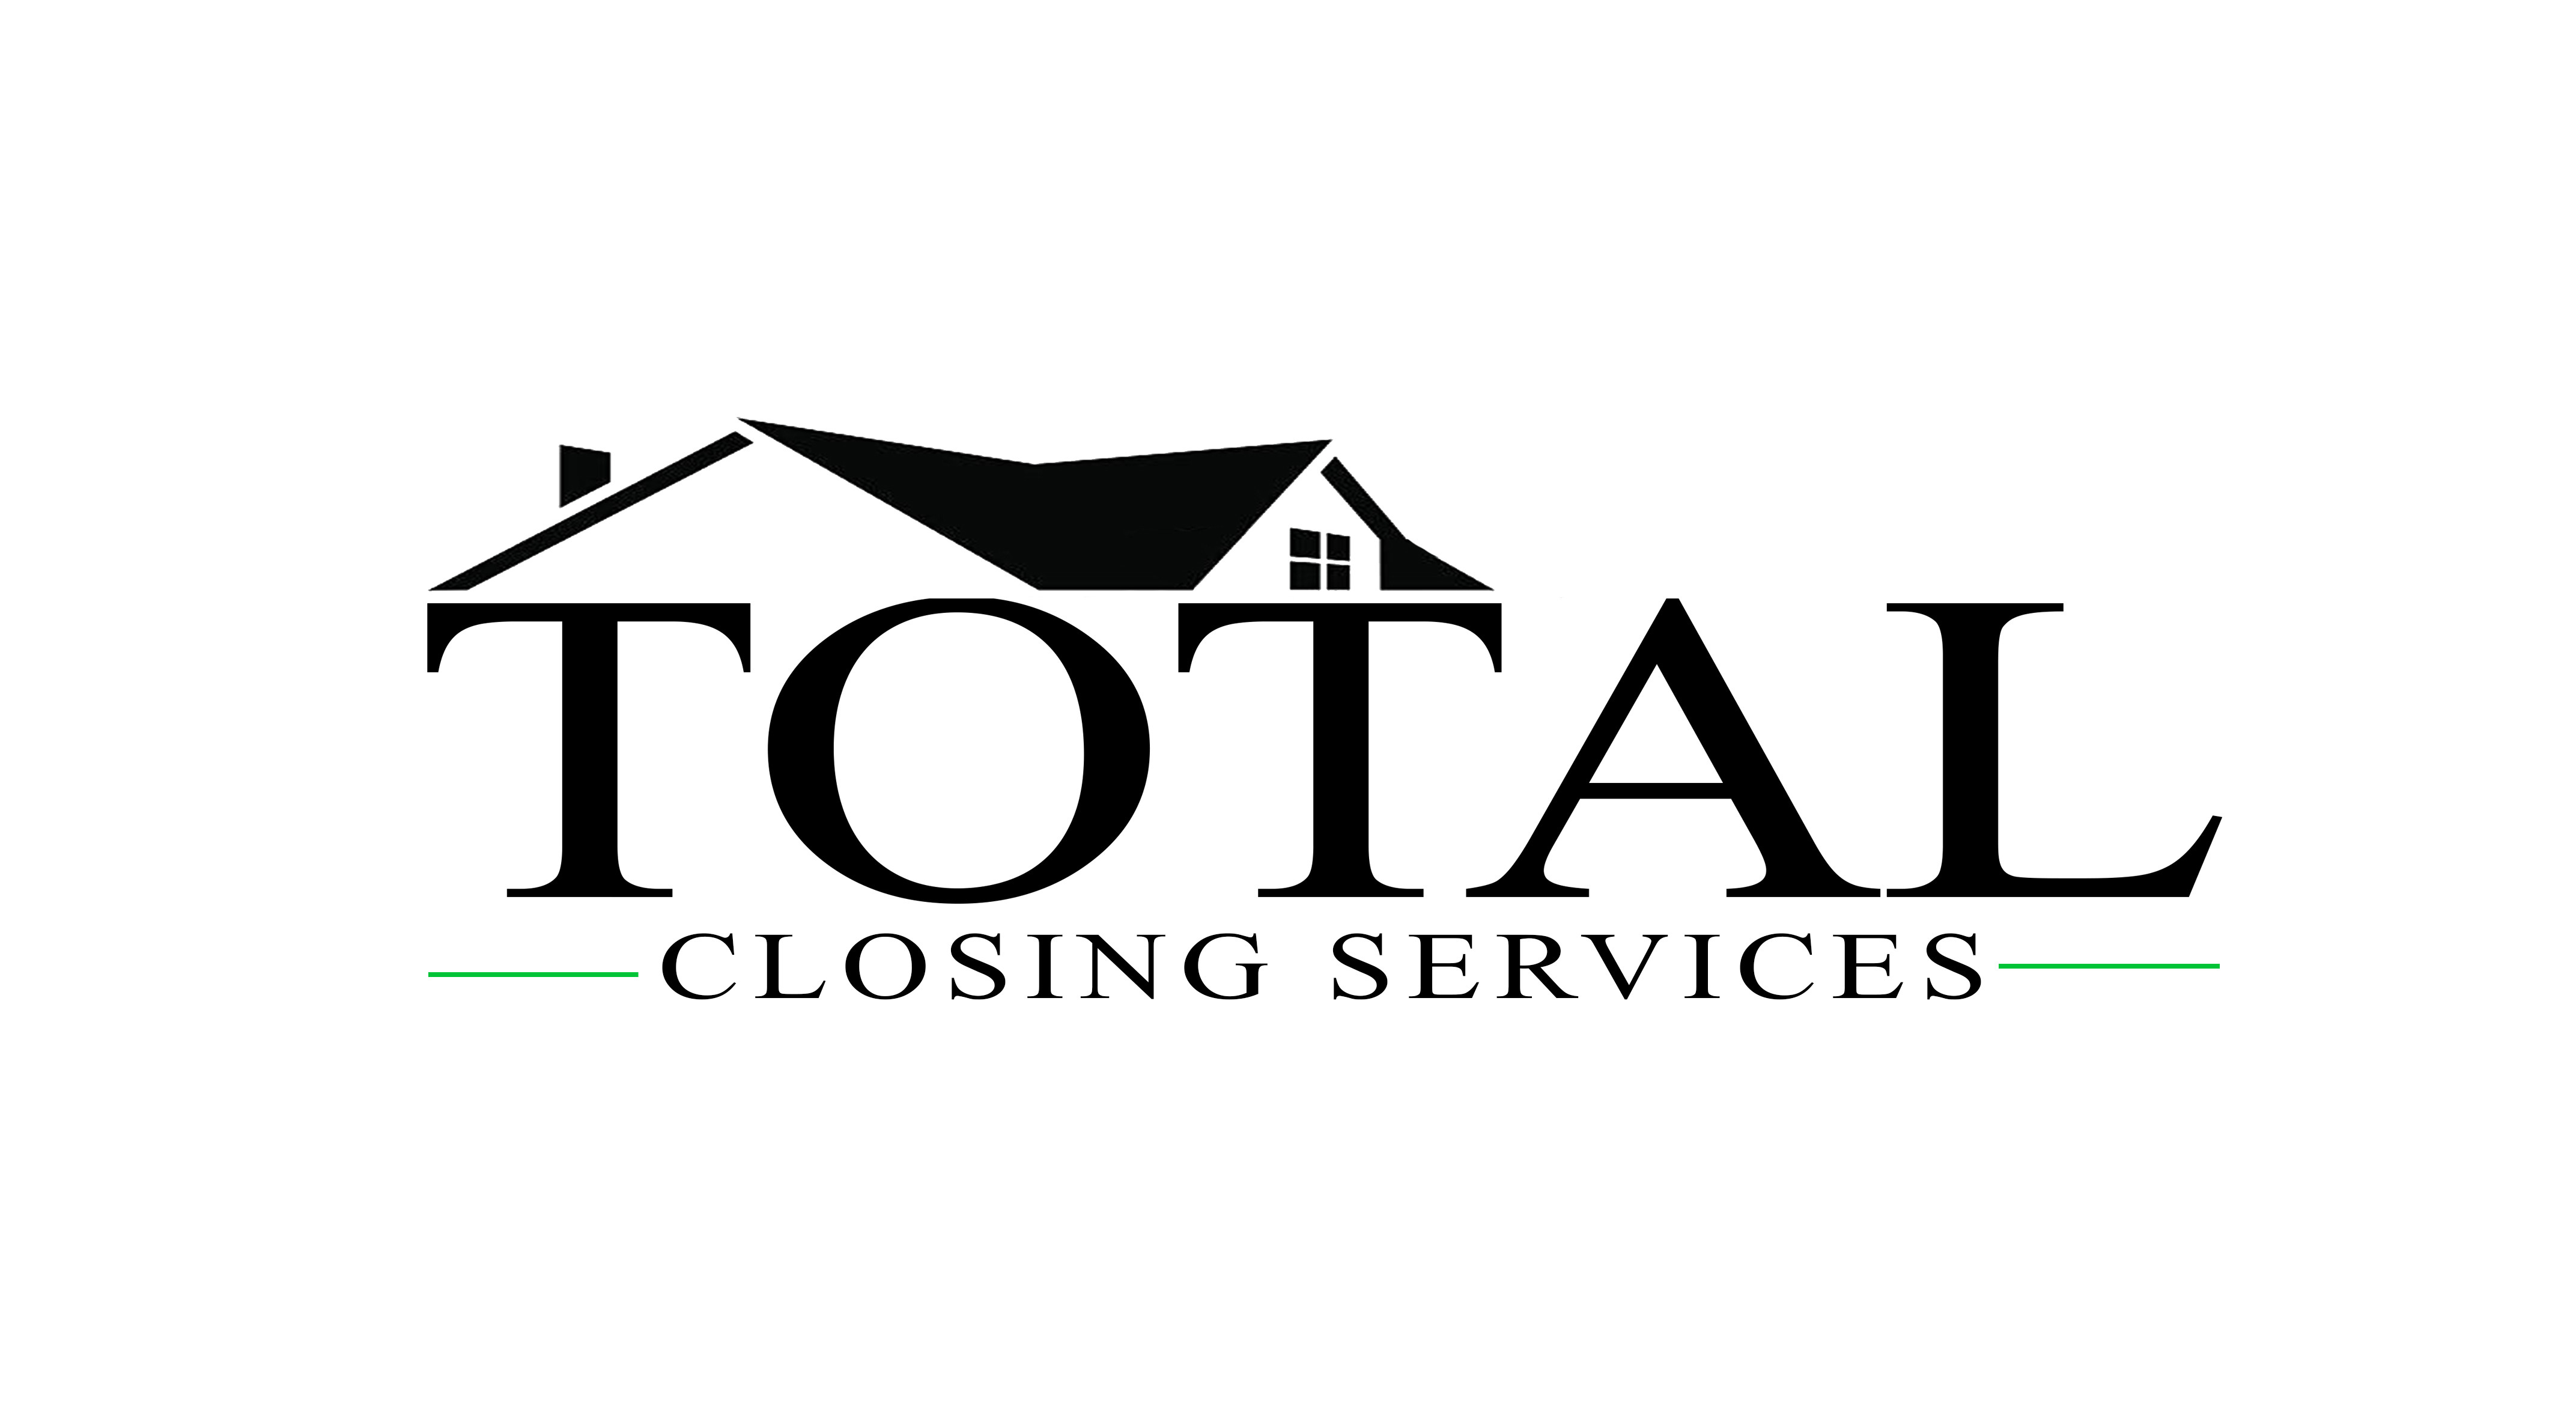 Total Closing Services